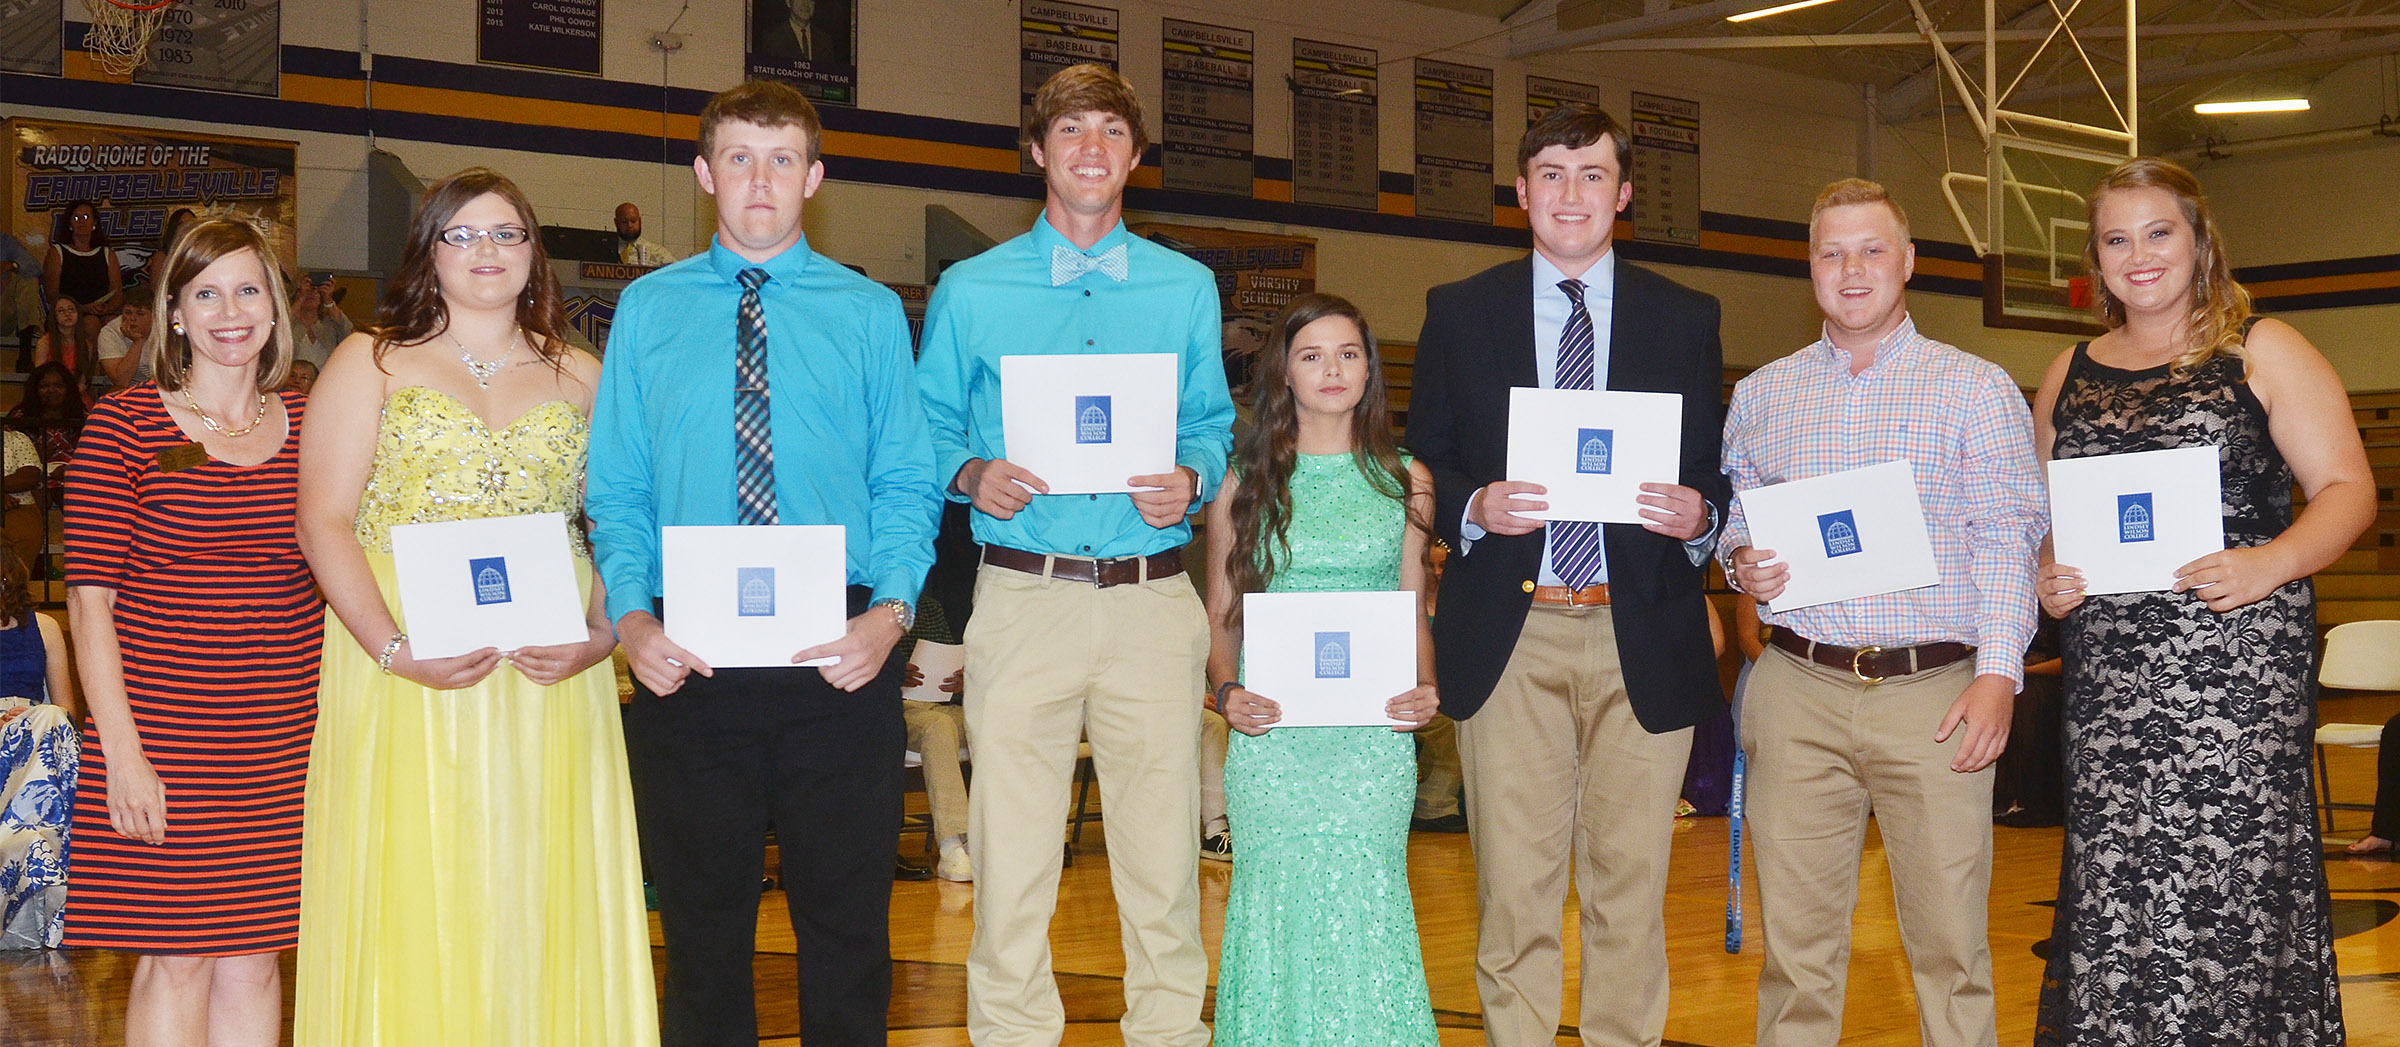 Receiving Lindsey Wilson College scholarships from admissions counselor Charity Ferguson, at left, are, from left, Vera Brown, Jared Brewster, Zack Bottoms, Shauna Jones, Zack Settle, Noah Wagers and Brenna Wethington.